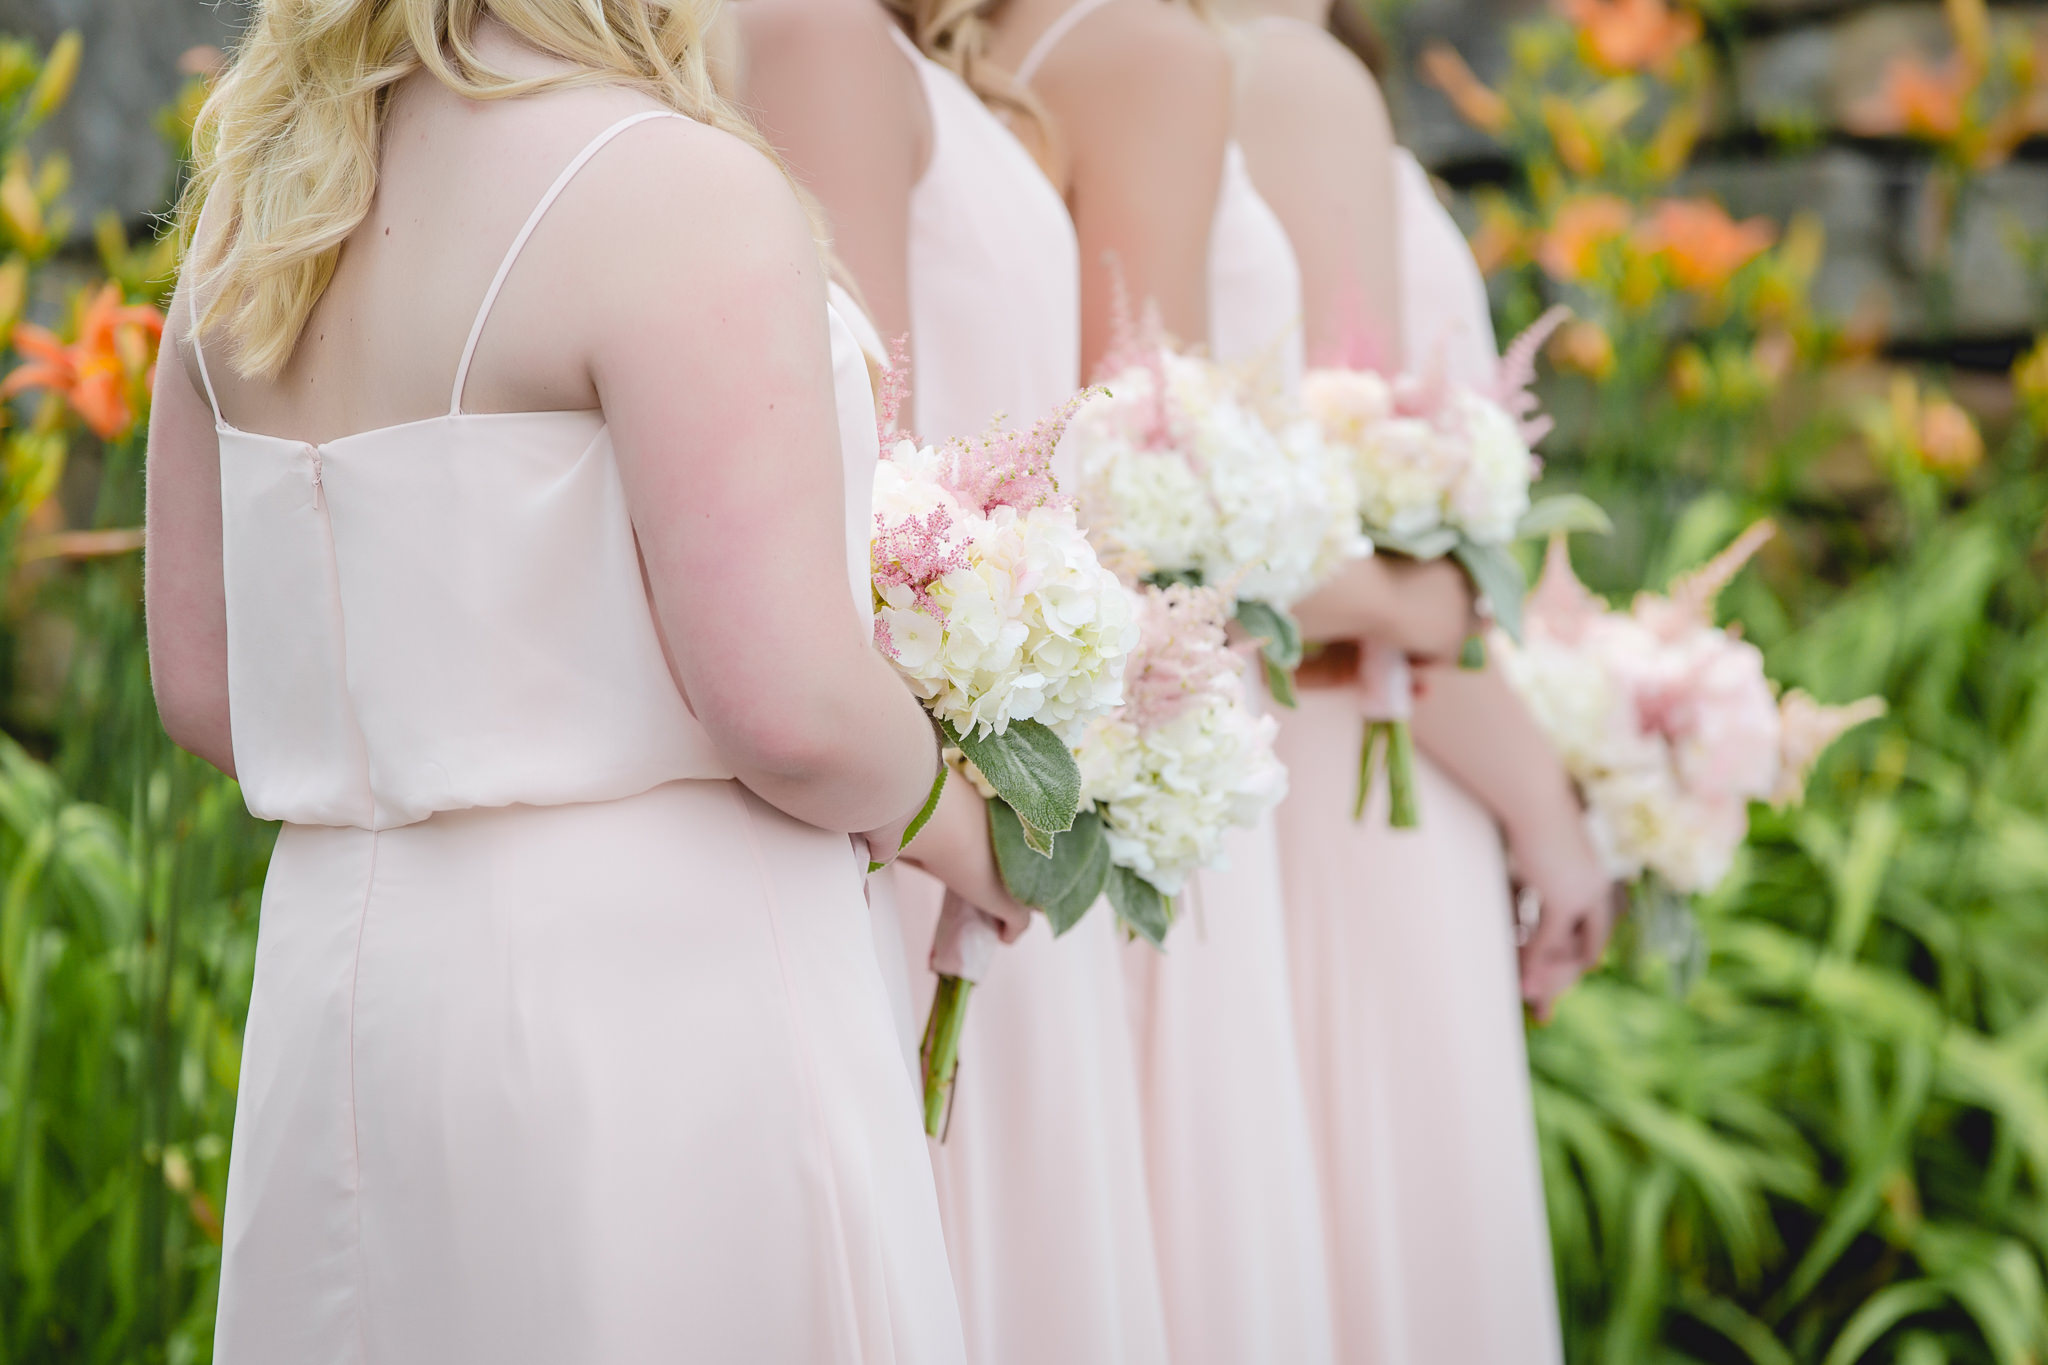 Bridesmaids hold hydrangea bouquets at an outdoor wedding ceremony